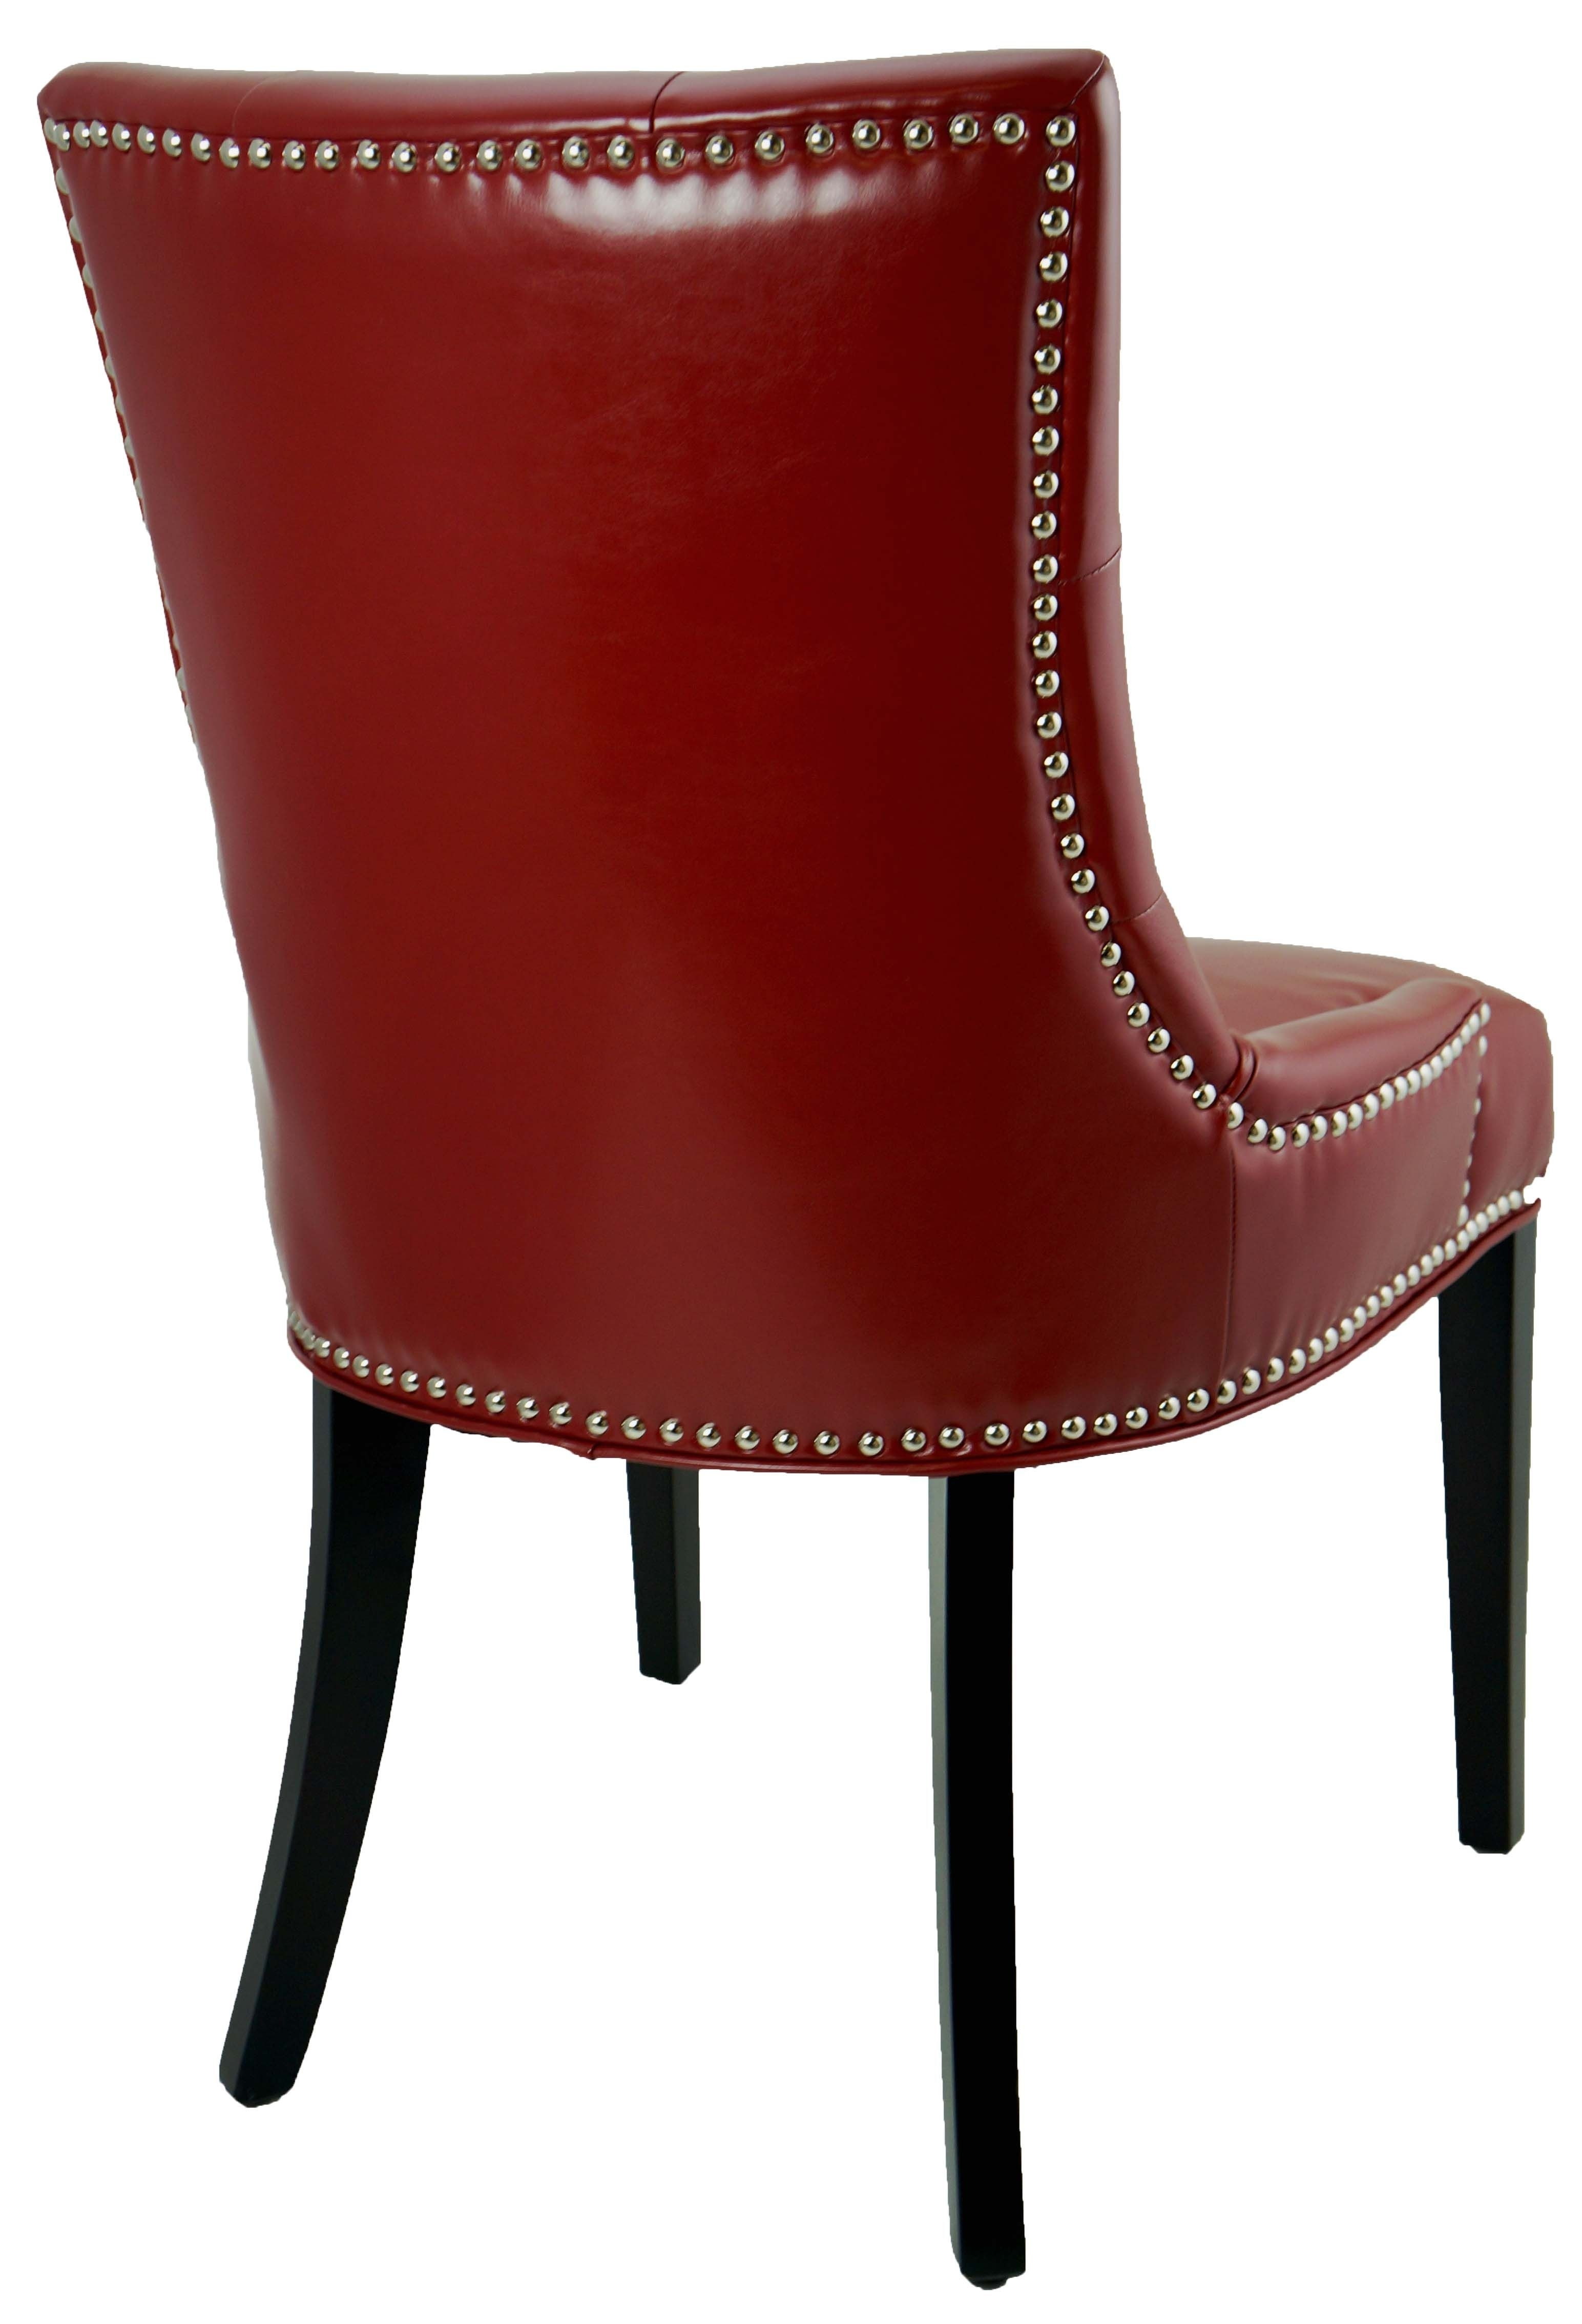 Famous Leather Parson, Dining Room & Kitchen Chairs :: Red Accent Tufted Pertaining To Red Leather Dining Chairs (View 4 of 25)